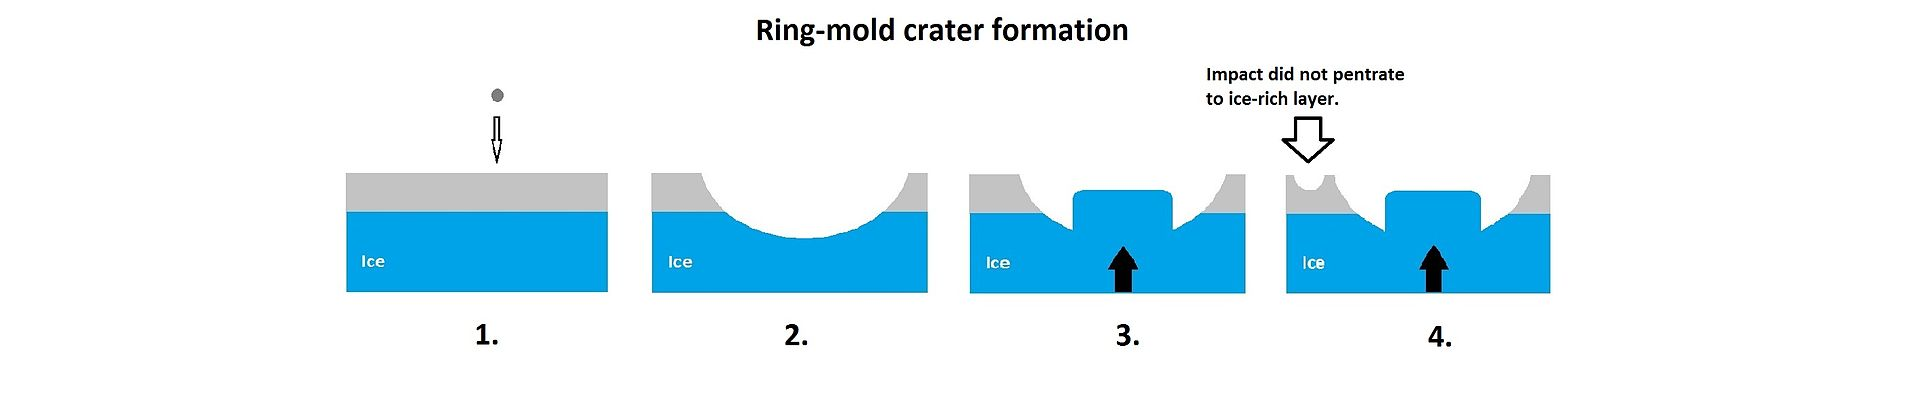 Ring-mold craters form when an impact goes through to an ice layer. The rebound forms the ring-mold shape, and then dust and debris settle on the top to insulate the ice.